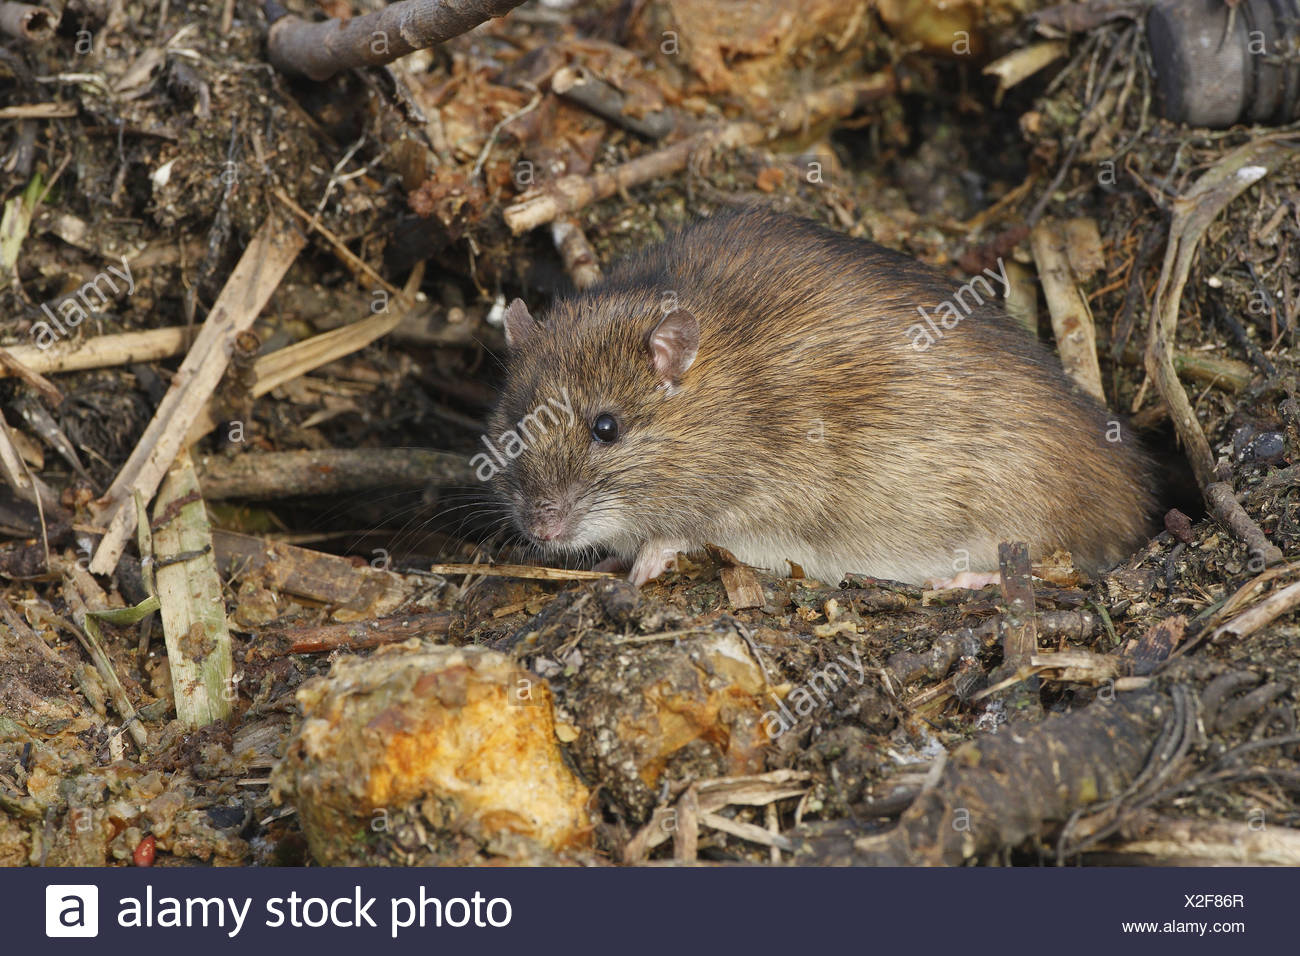 Brown Rat leaving its hole in a staple of rotten fruit - Stock Image